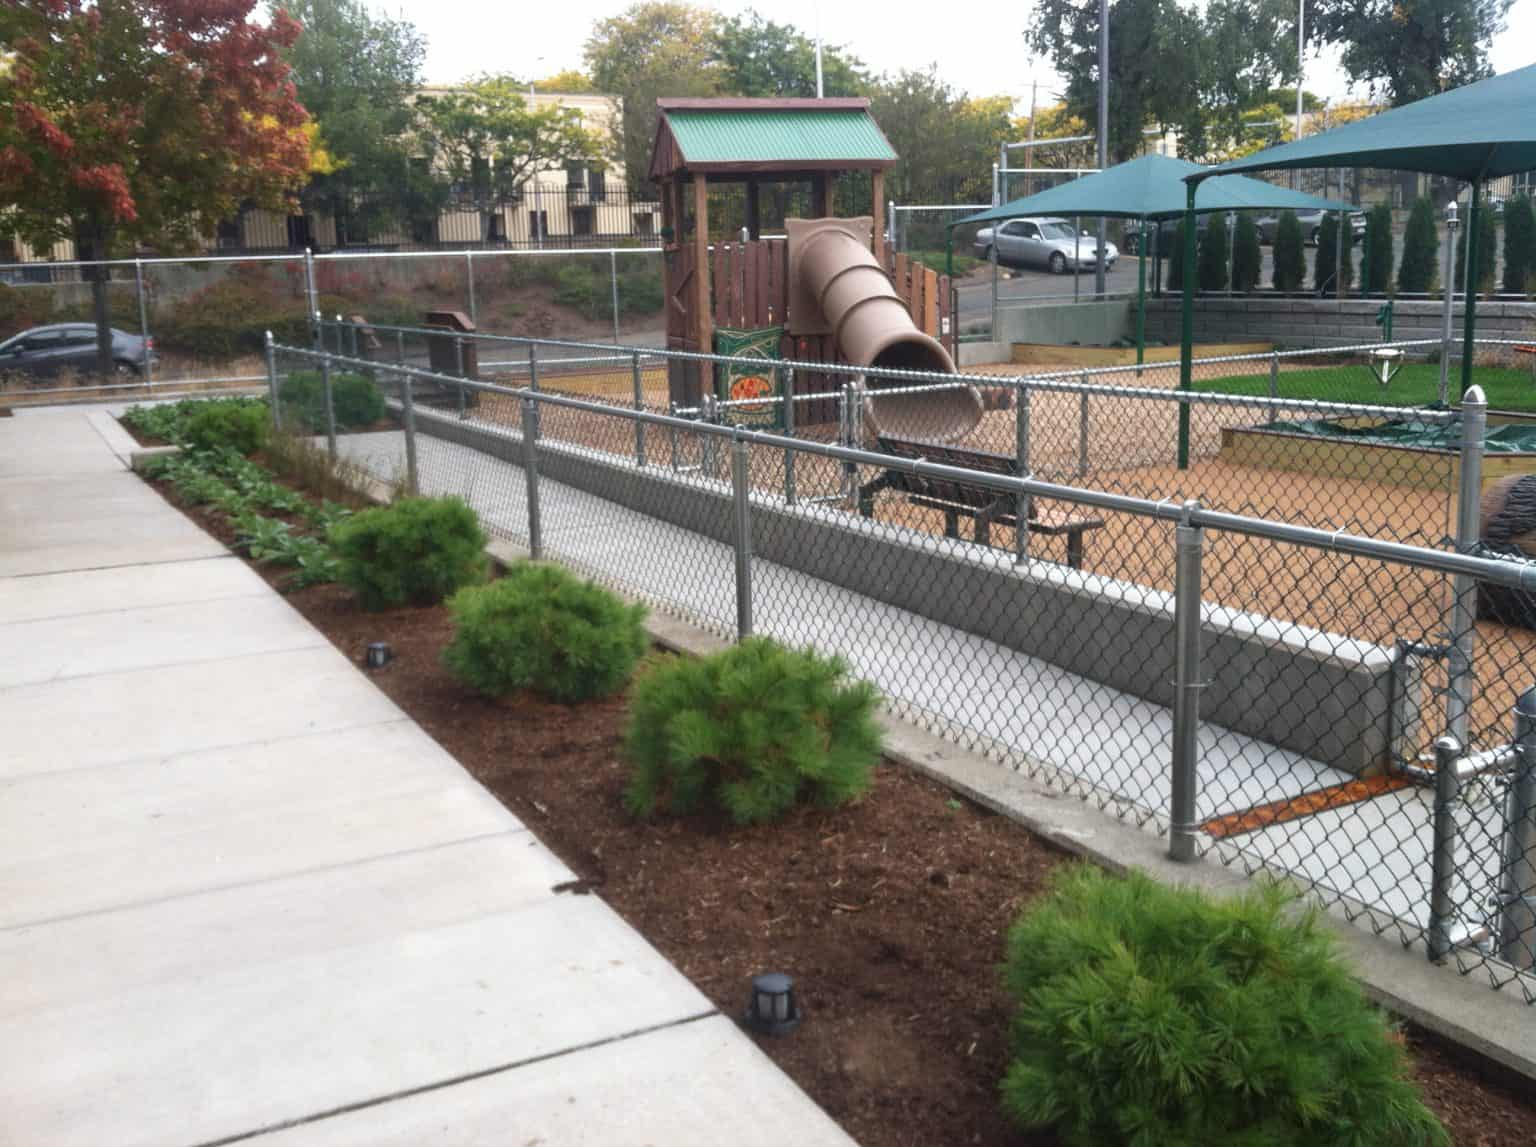 phyllis-bodel-daycare-playground-new-haven-ct_18127546475_o-1536x1147